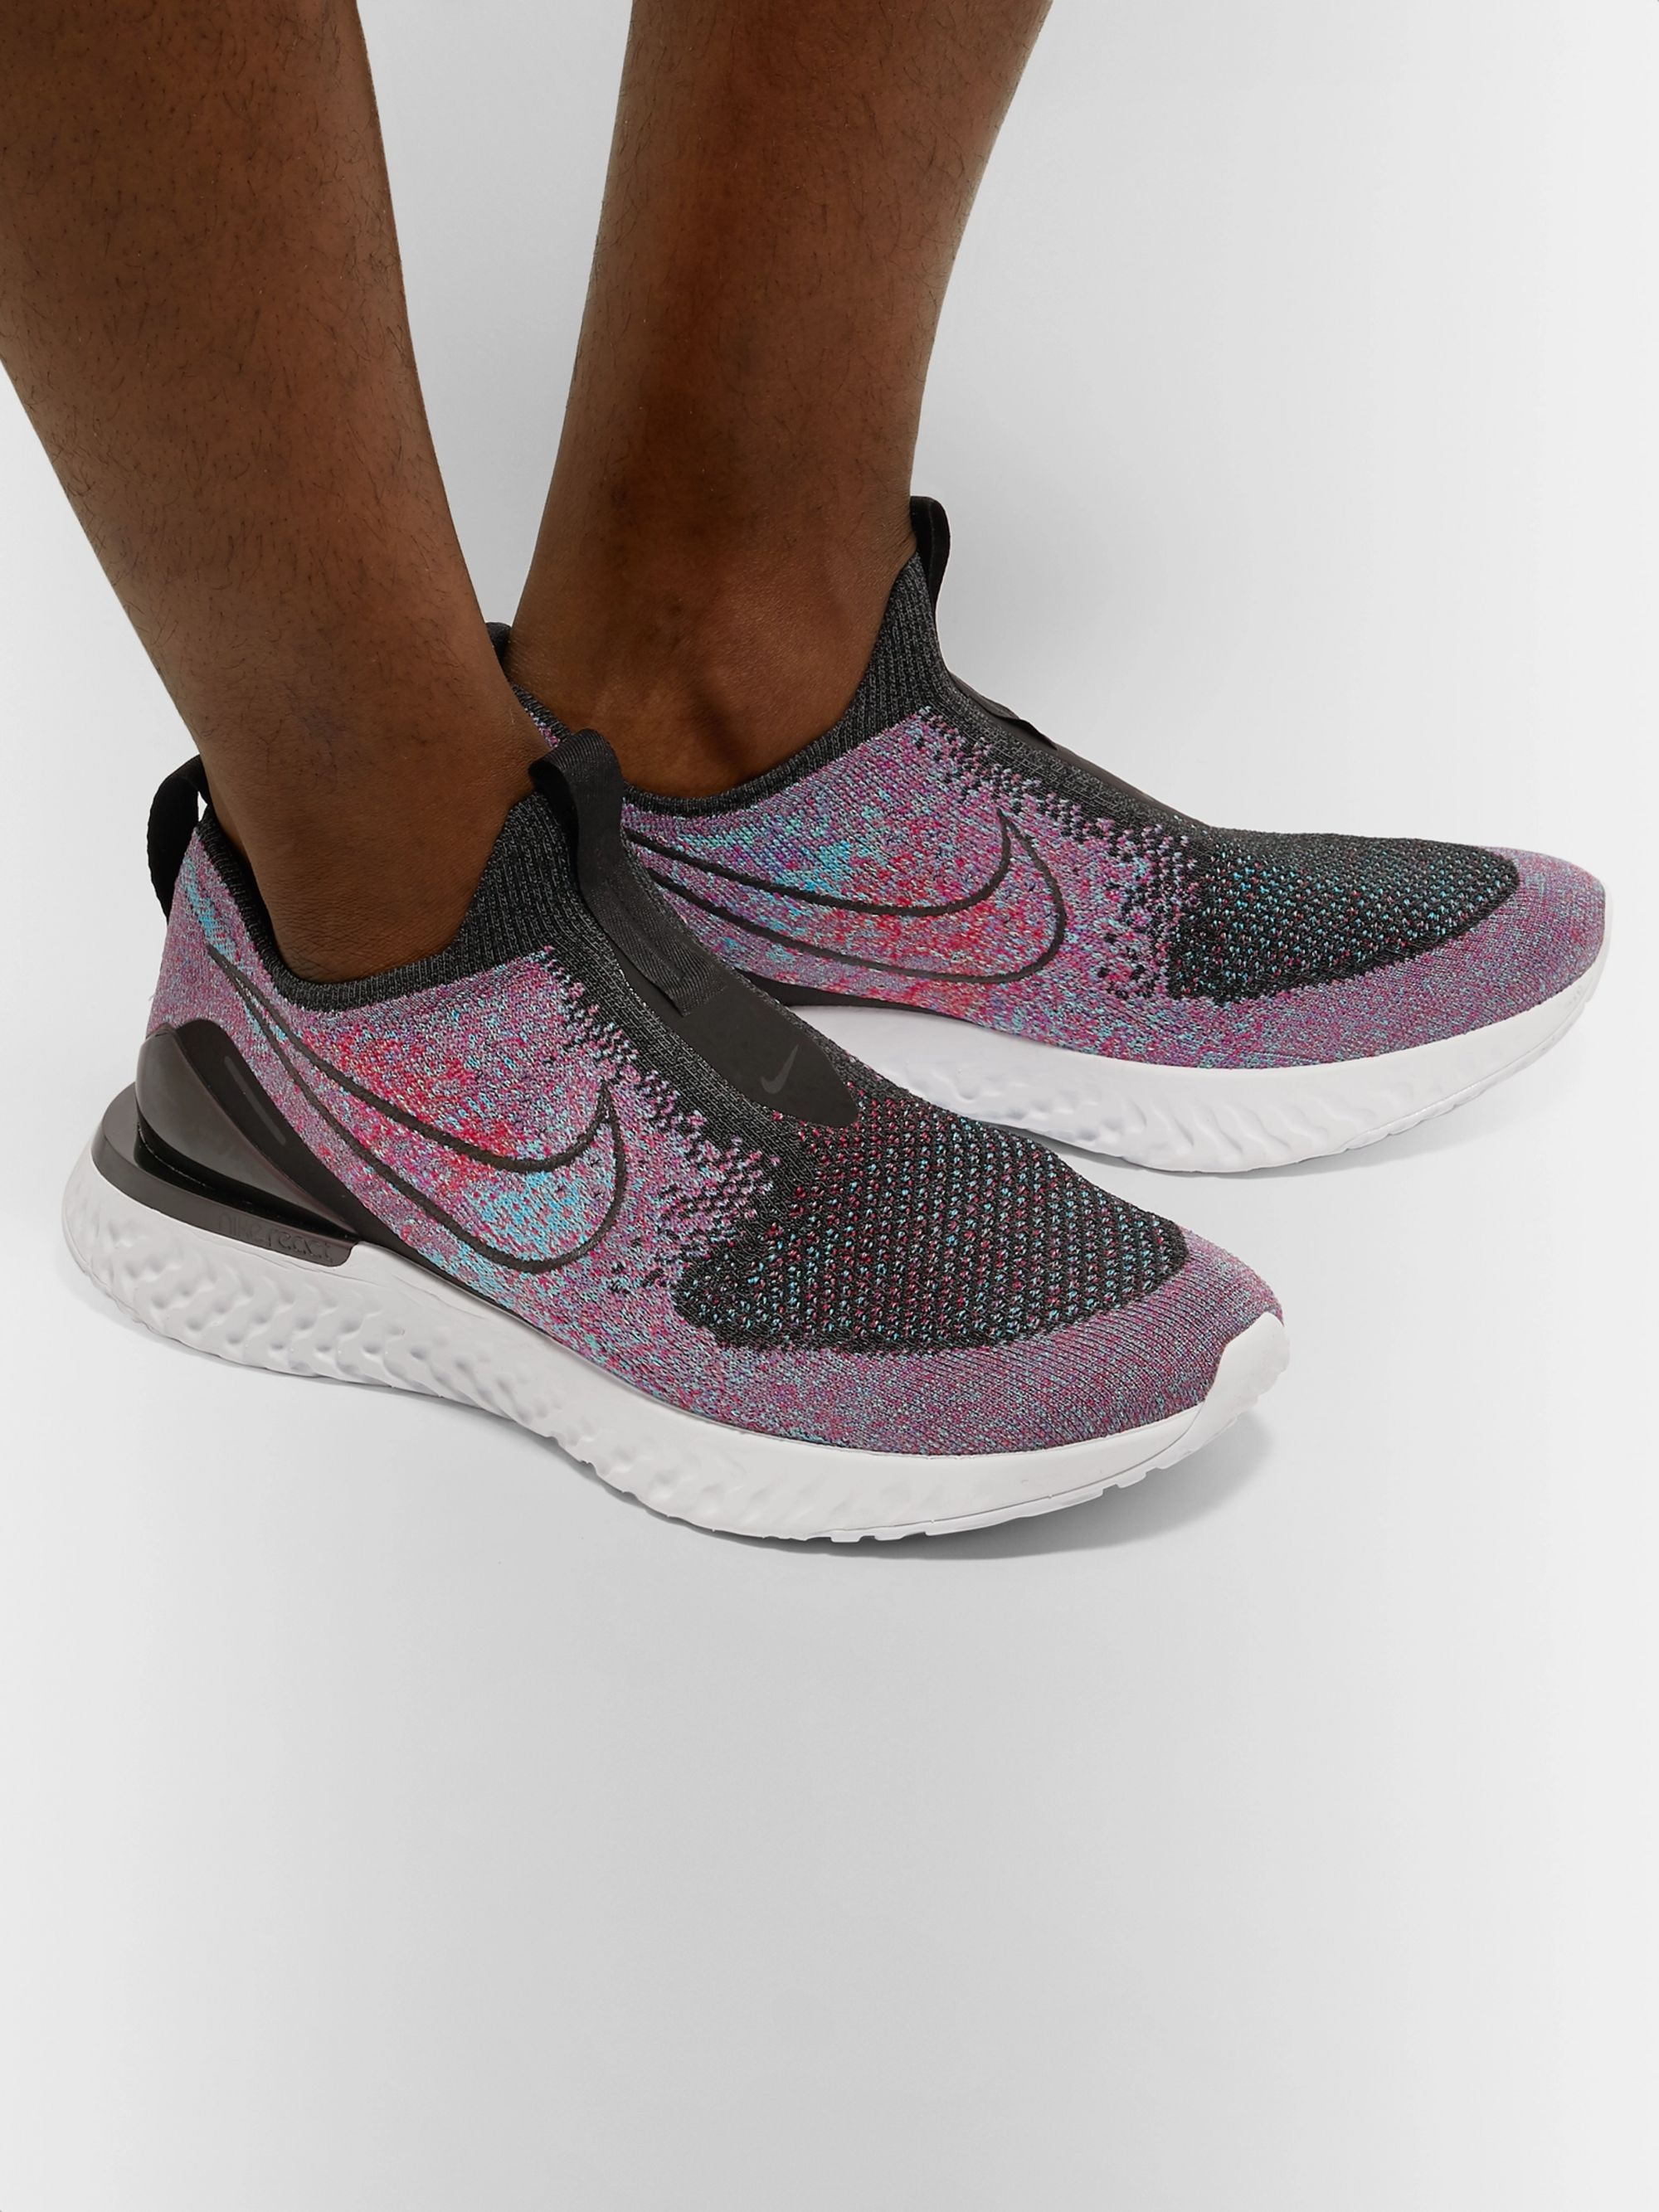 Epic Phantom React Flyknit Slip On Running Sneakers